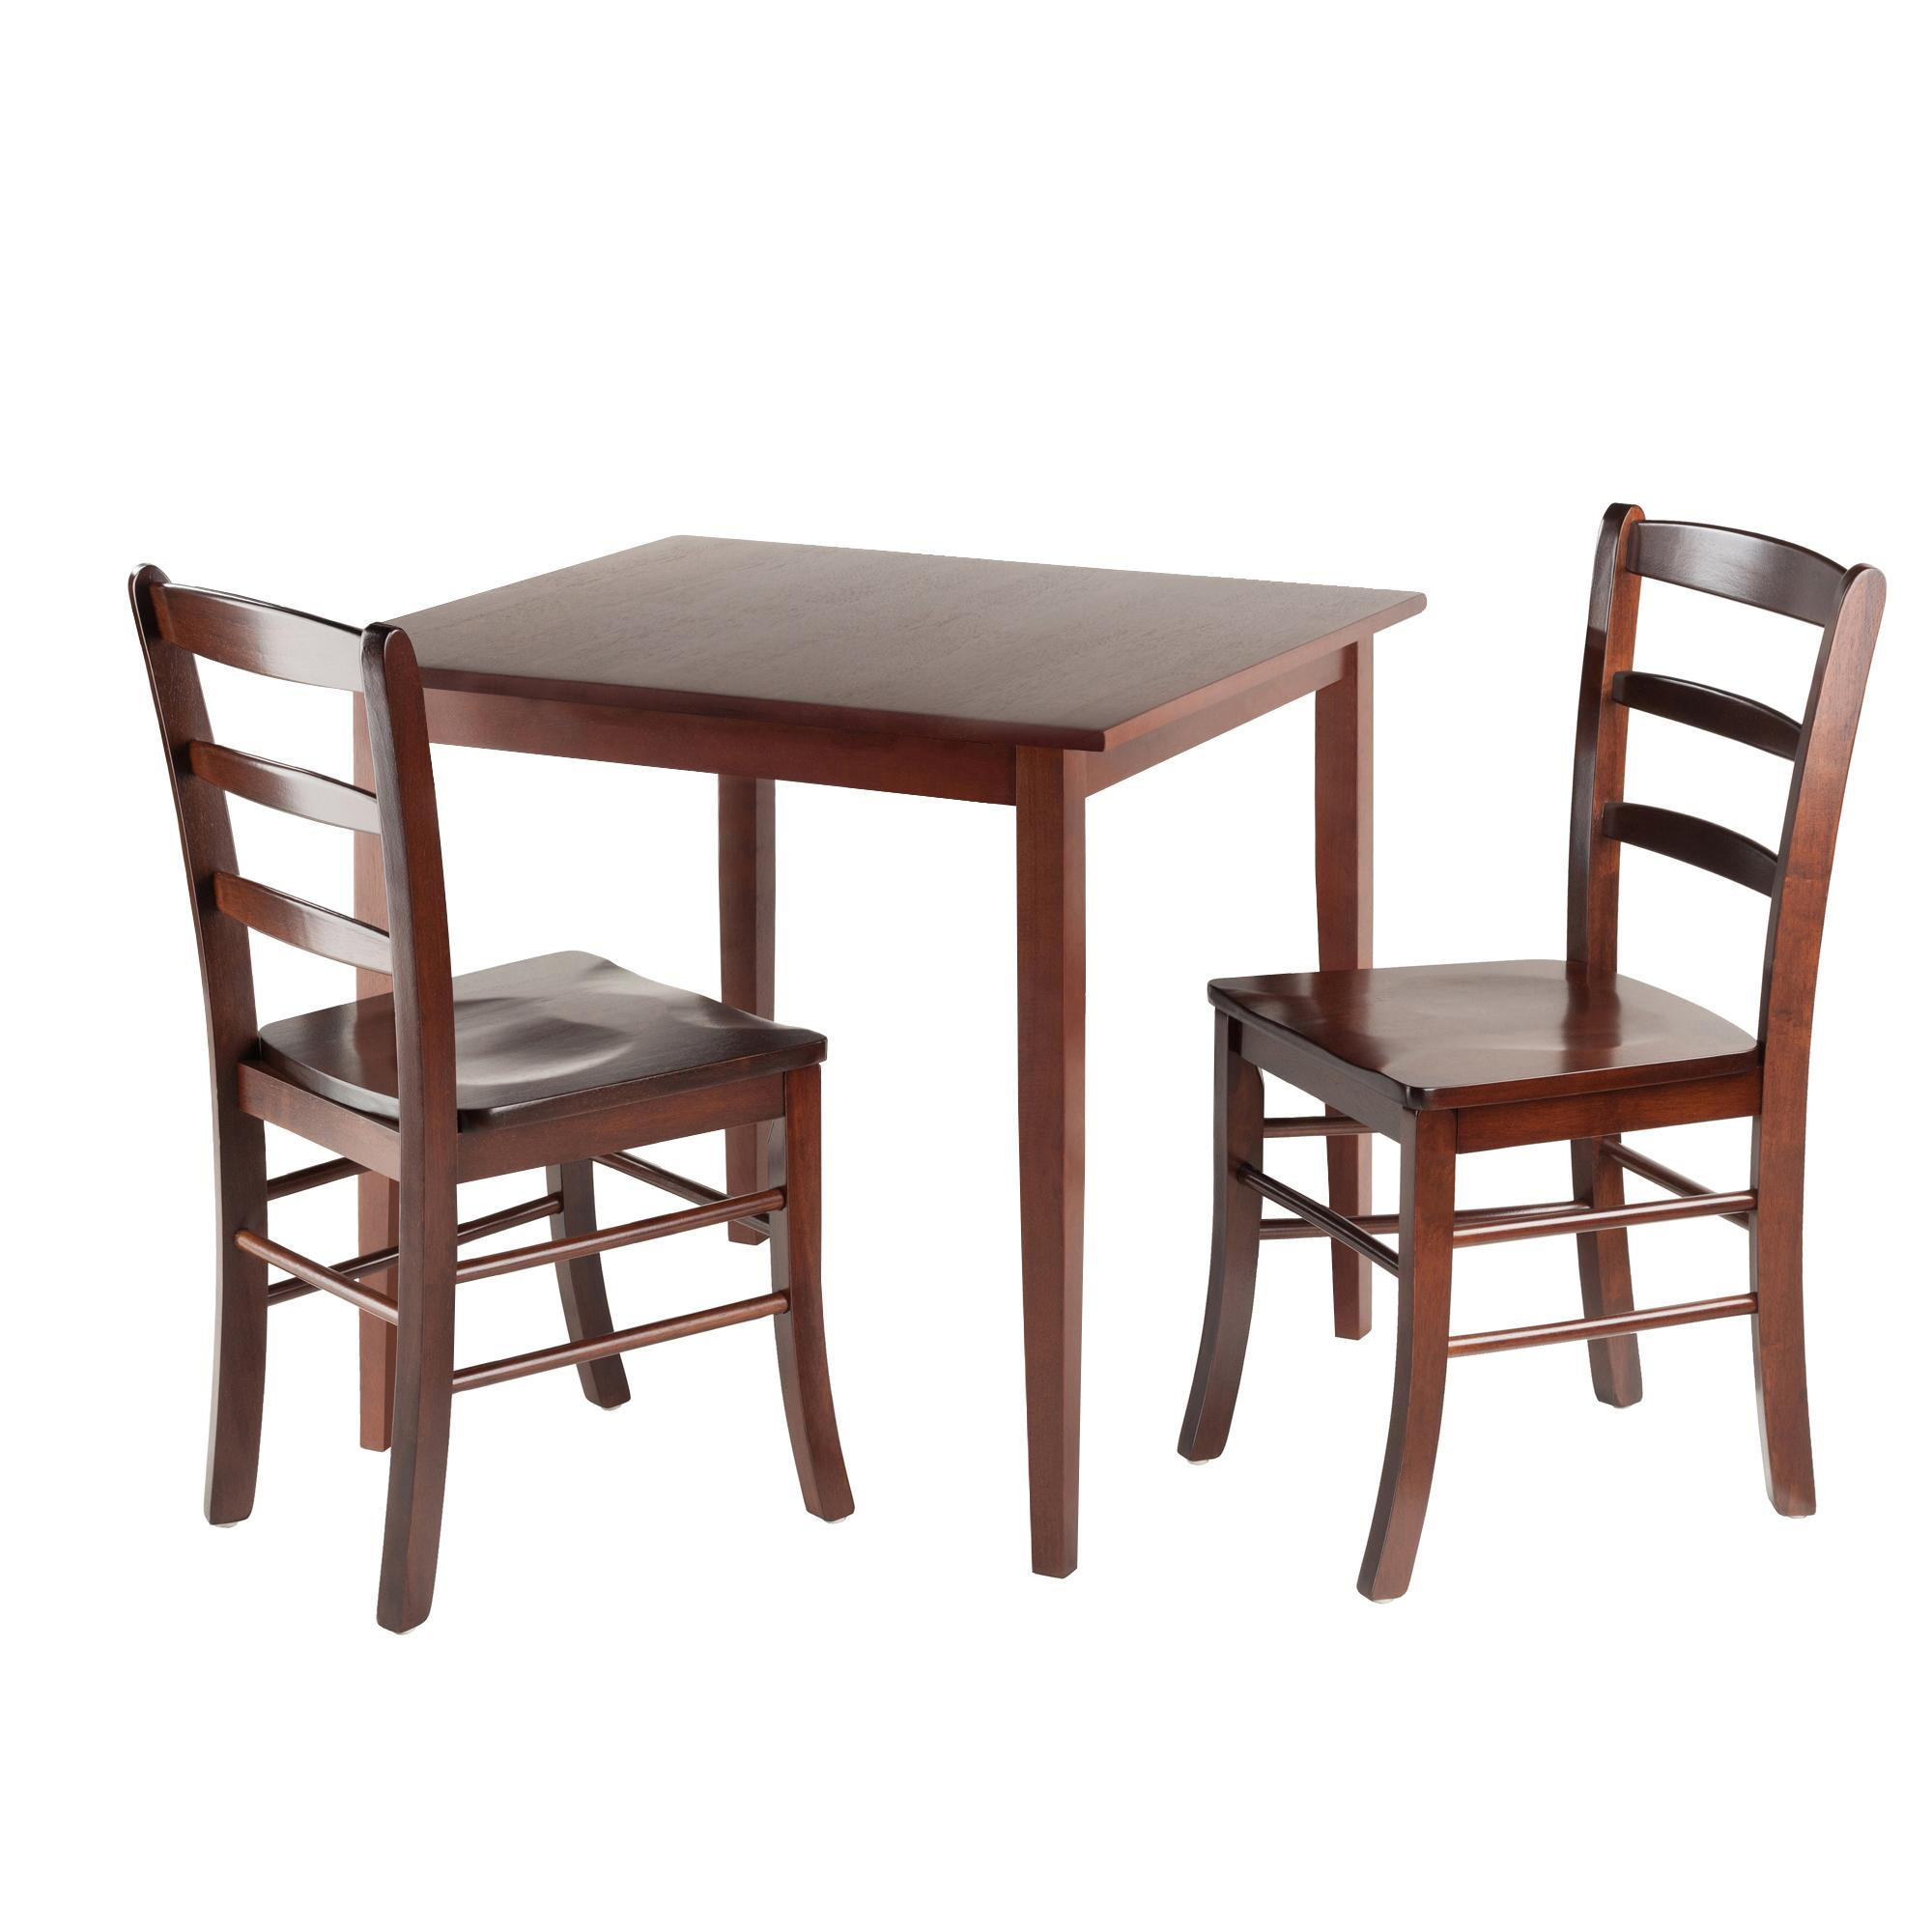 View larger  sc 1 st  Amazon.com : small kitchen table sets for 2 - pezcame.com